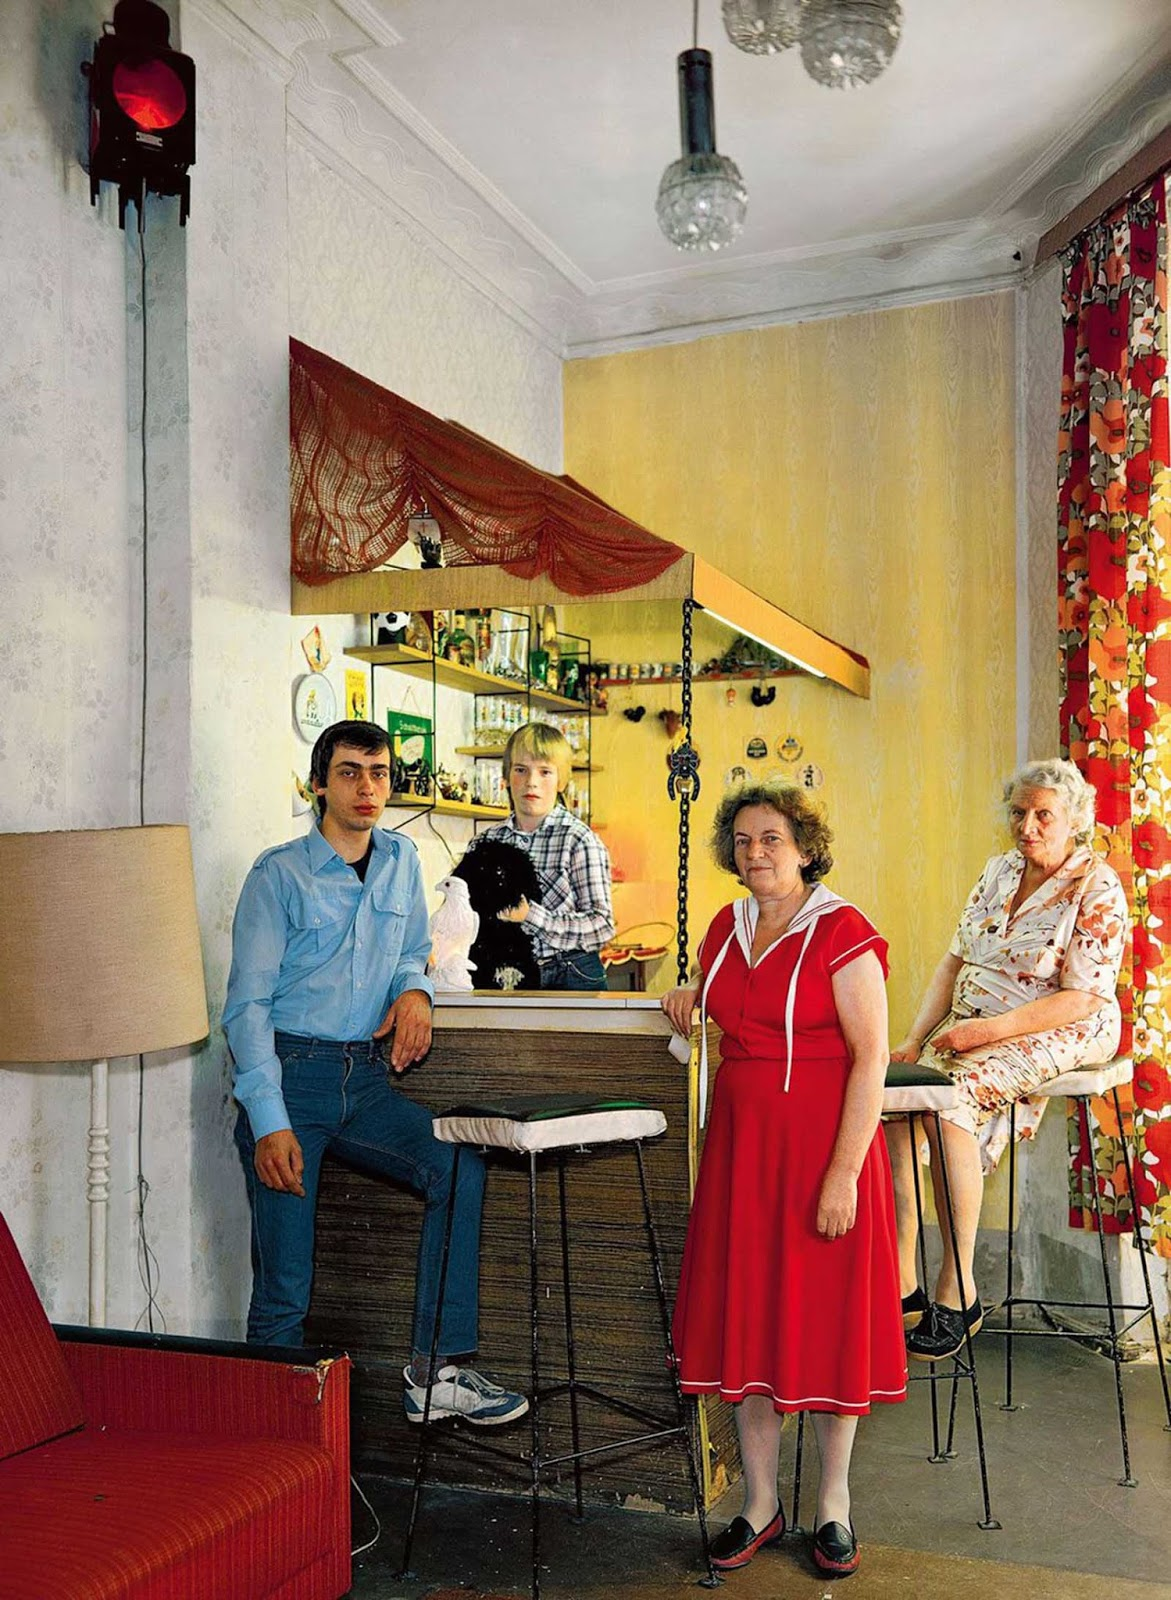 Ingeborg (front, cleaner), her son Lothar (left, carpenter), her grandson Guido and their grandmother.